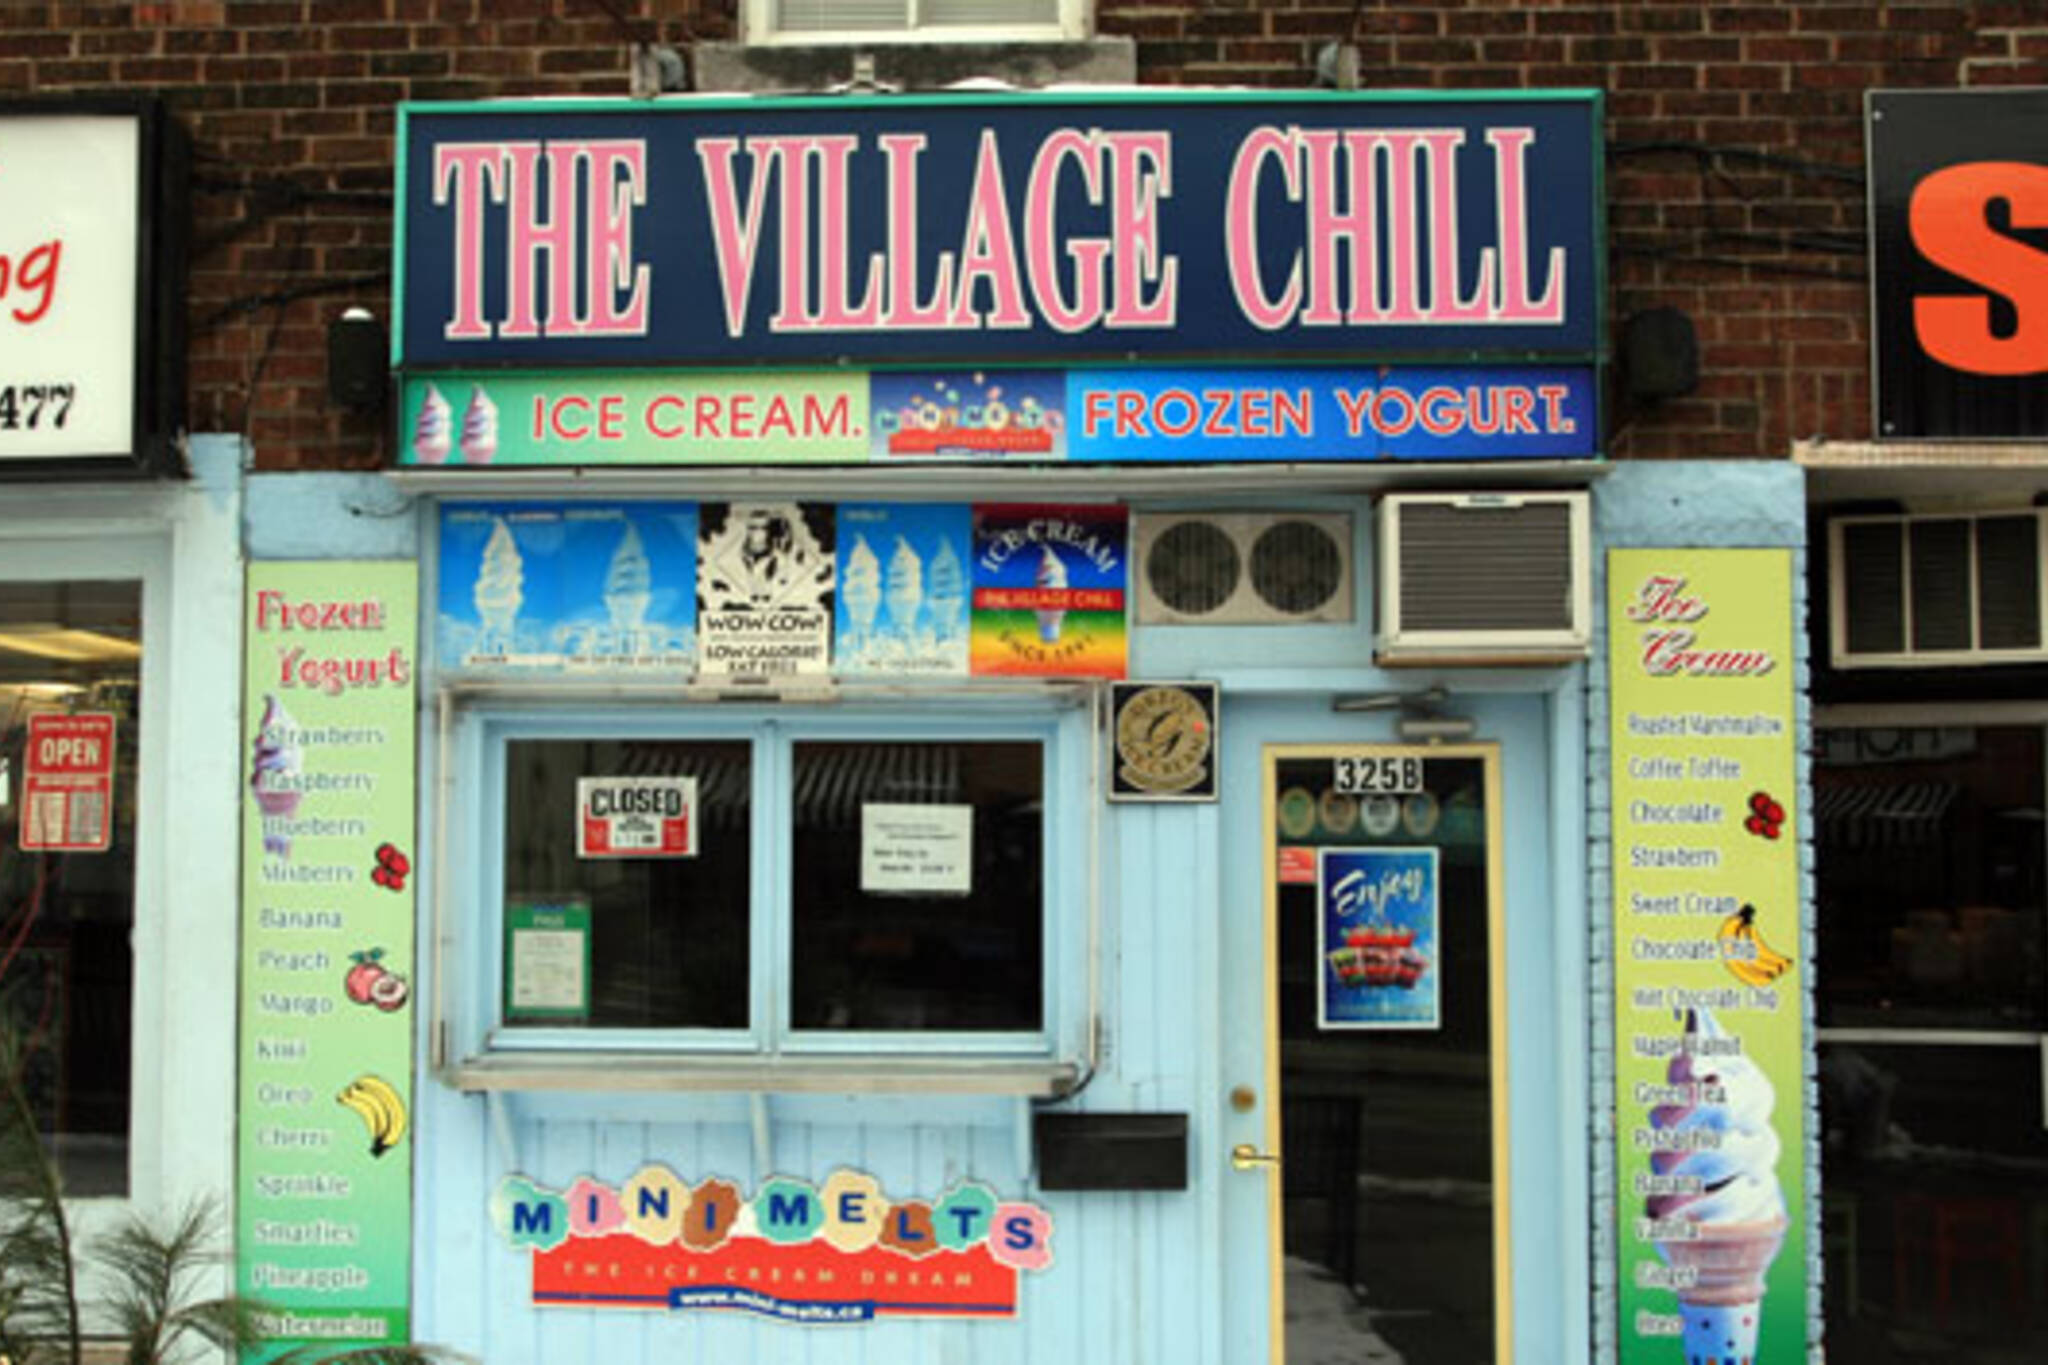 The Village Chill